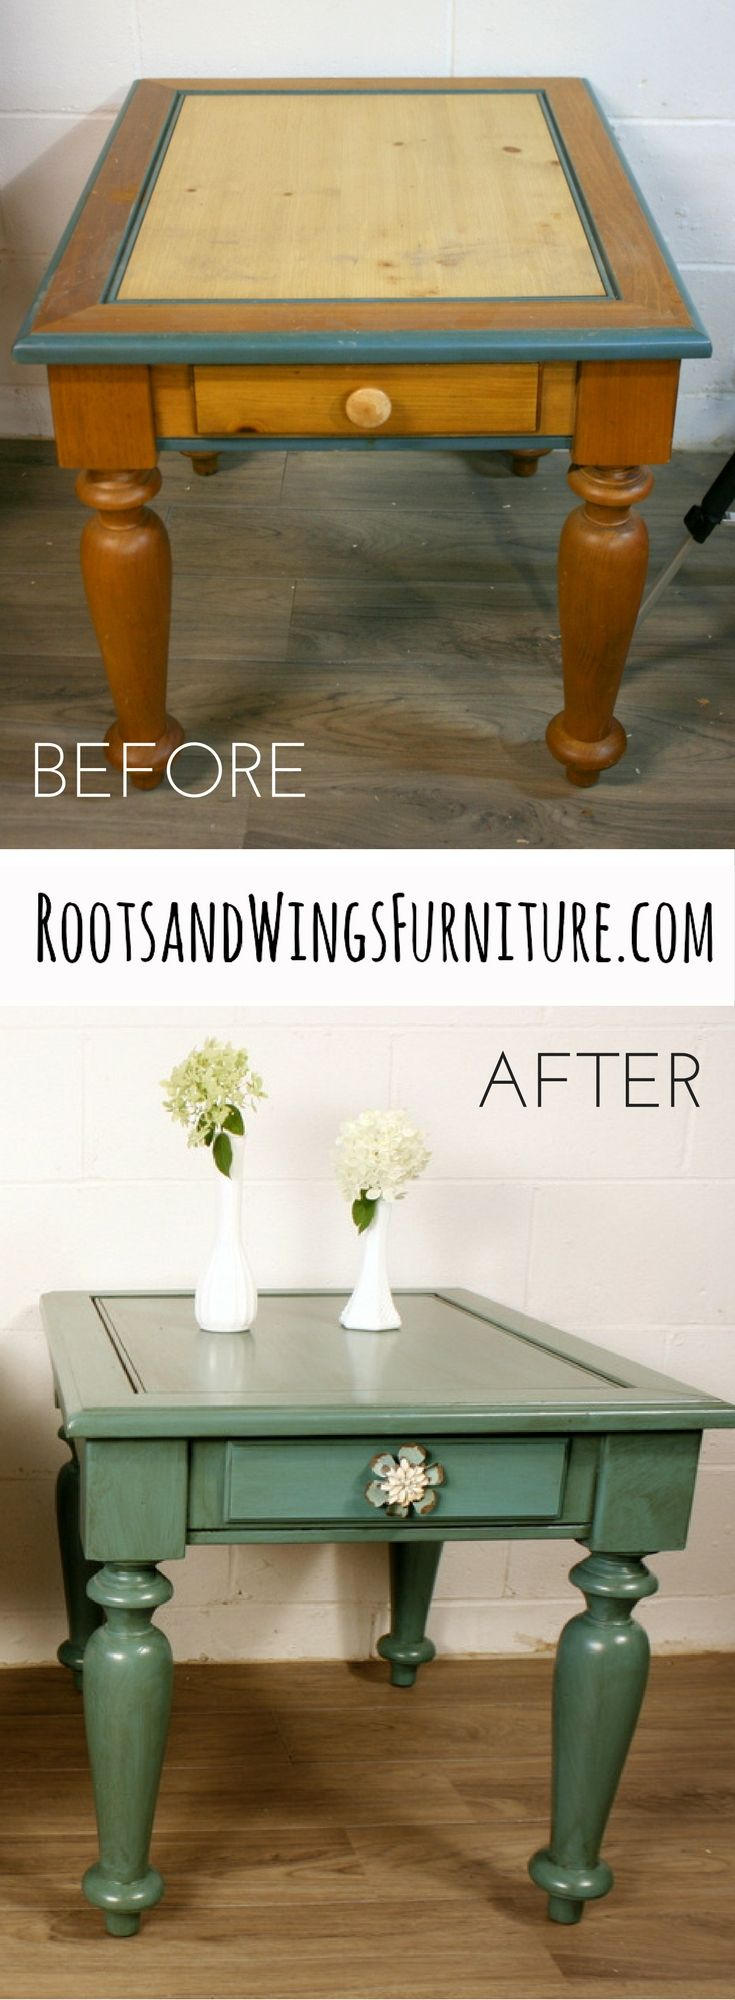 I took a $10 pair of end tables and turned them into something beautiful using General Finishes Milk Paint and Glaze Effects by Jenni of Roots and Wings Furniture.